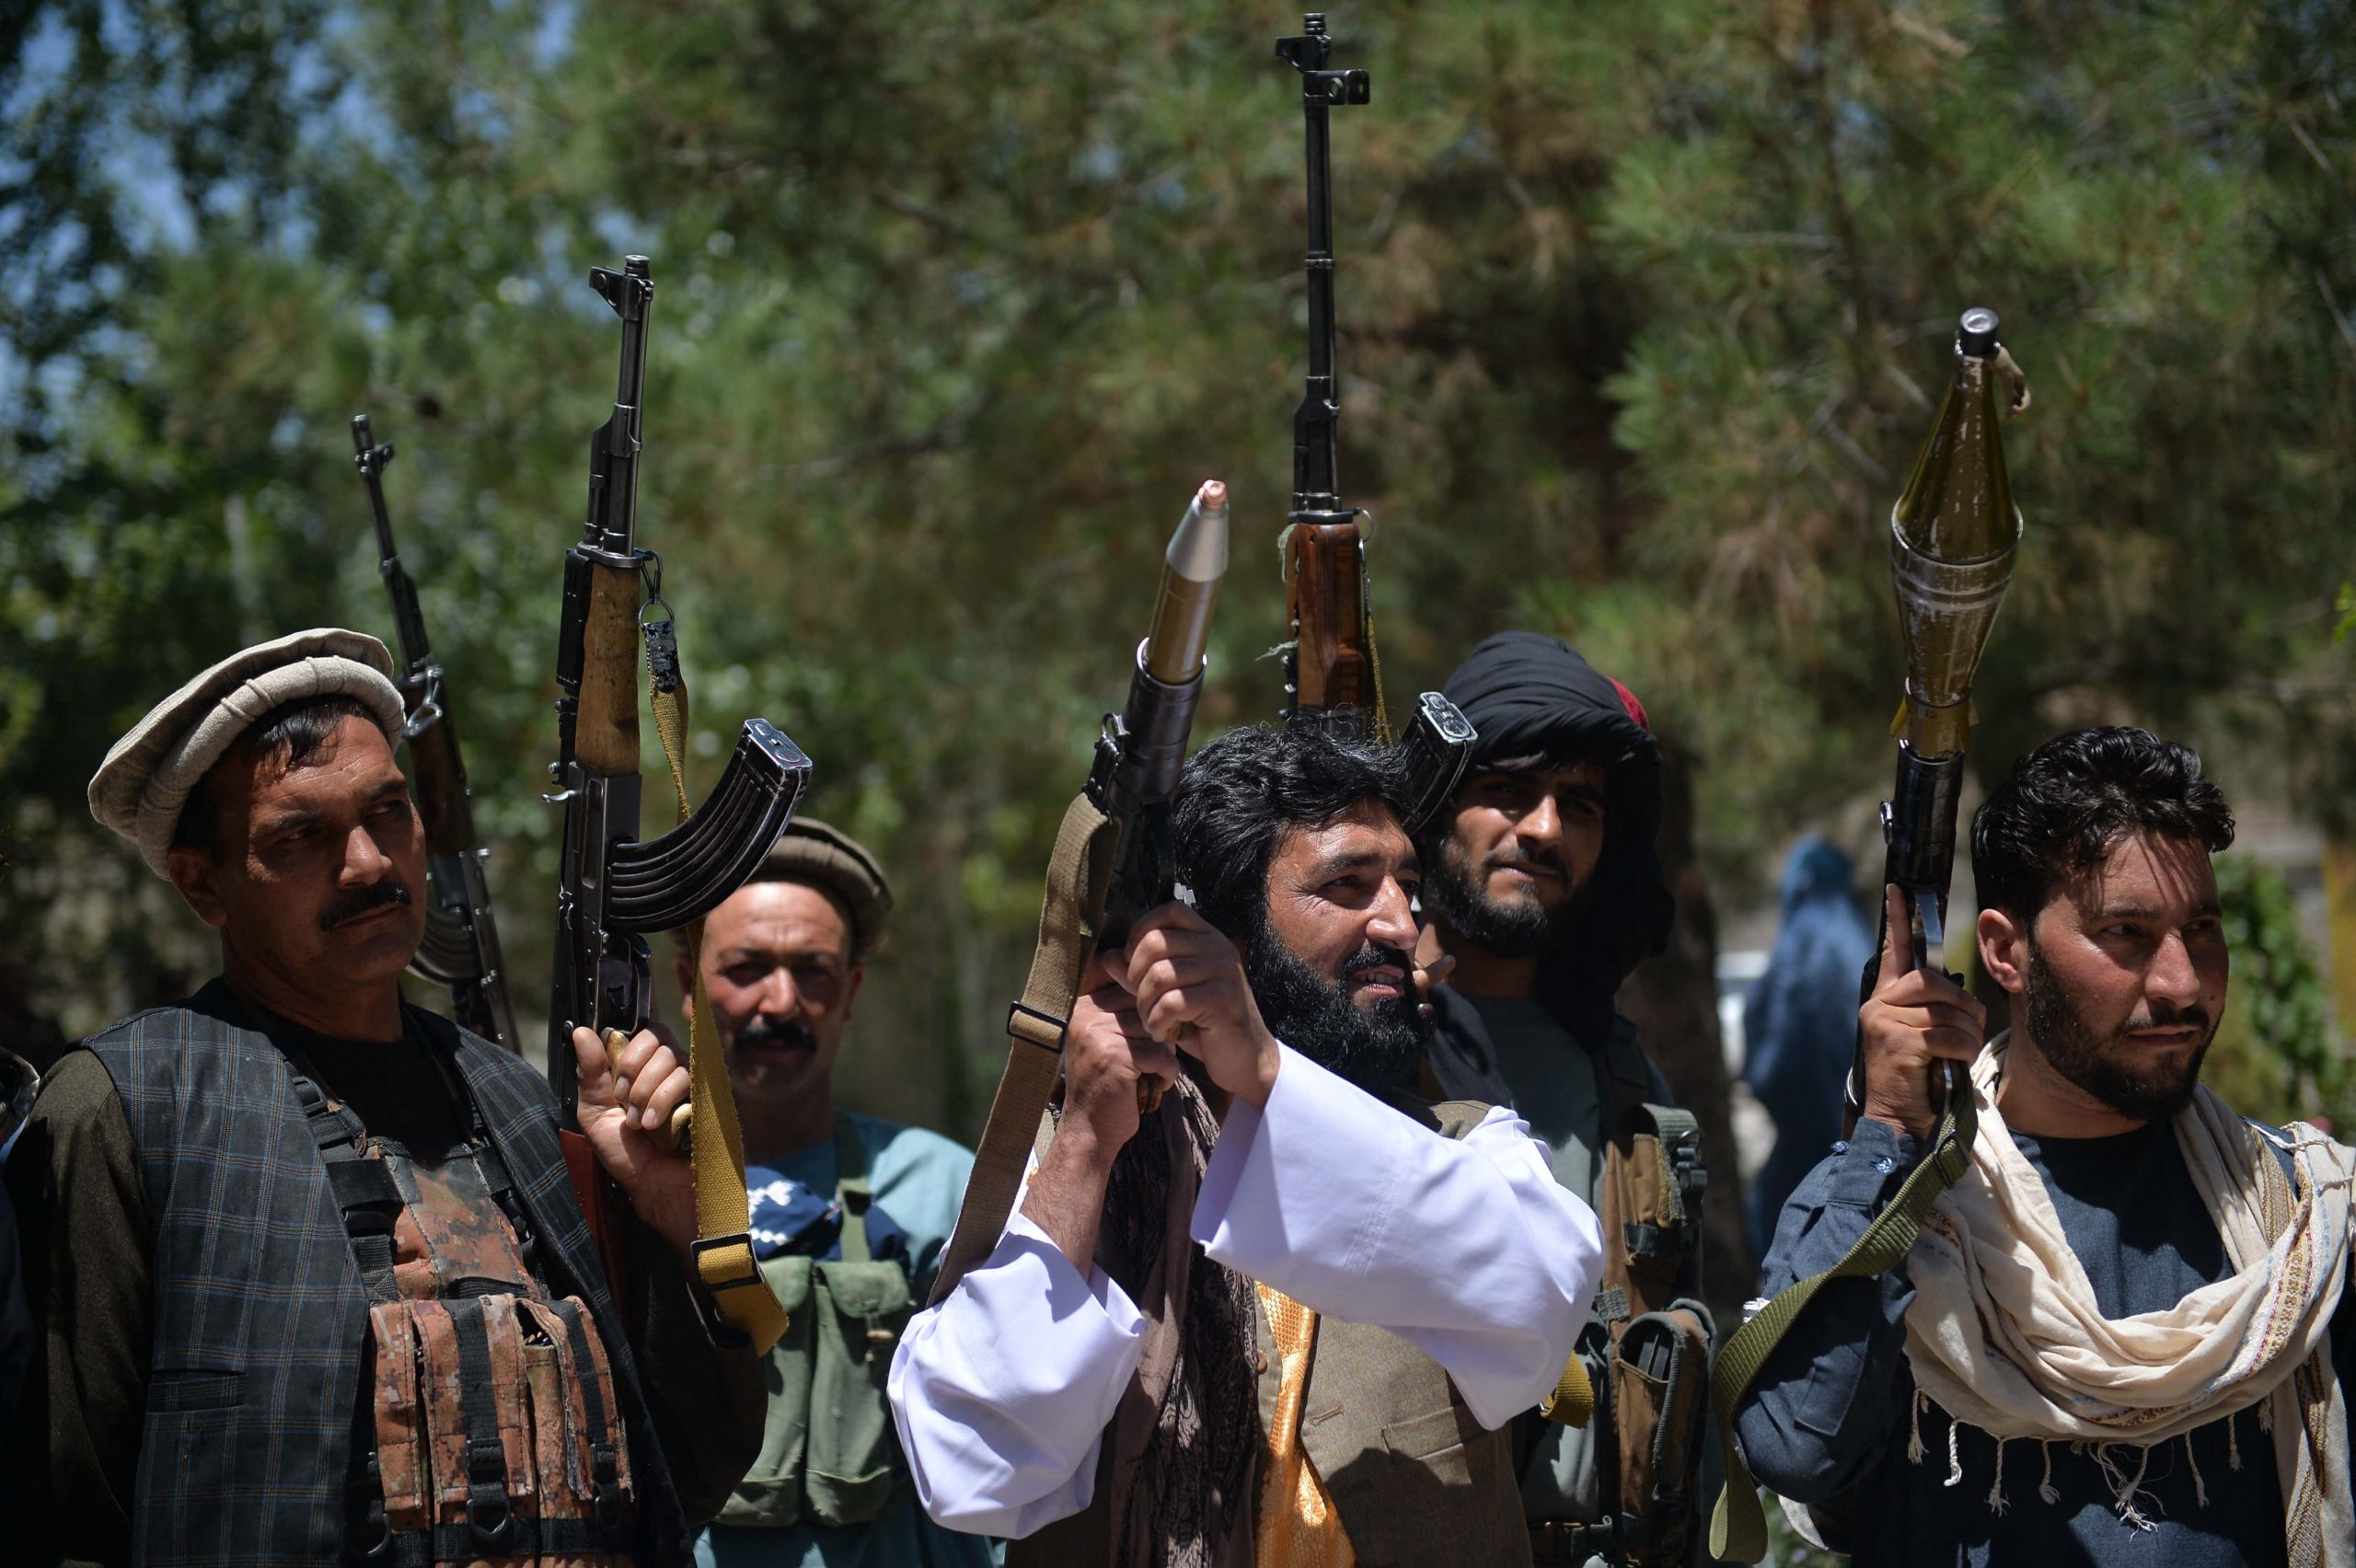 People gather with their heavy weapons to support Afghanistan security forces against the Taliban, in Guzara district, Herat province on June 23, 2021. (HOSHANG HASHIMI/AFP via Getty Images)